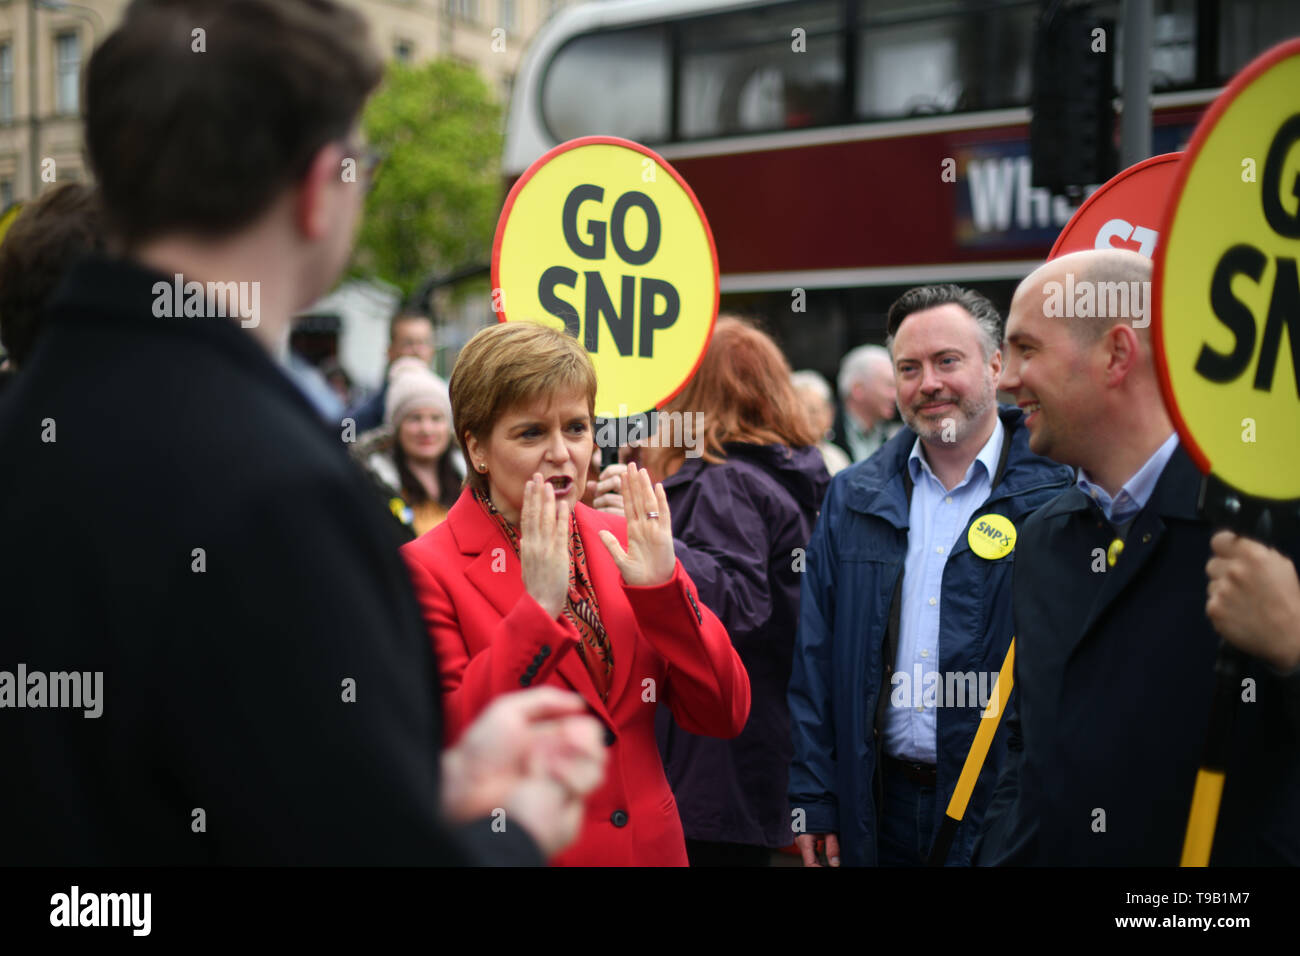 Edinburgh    May  18 2019;  First Minister Nicola Sturgeon campaigns alongside lead SNP European election candidate Alyn Smith and party activists on Leith Walk.   credit steven scott taylor / alamy live news - Stock Image